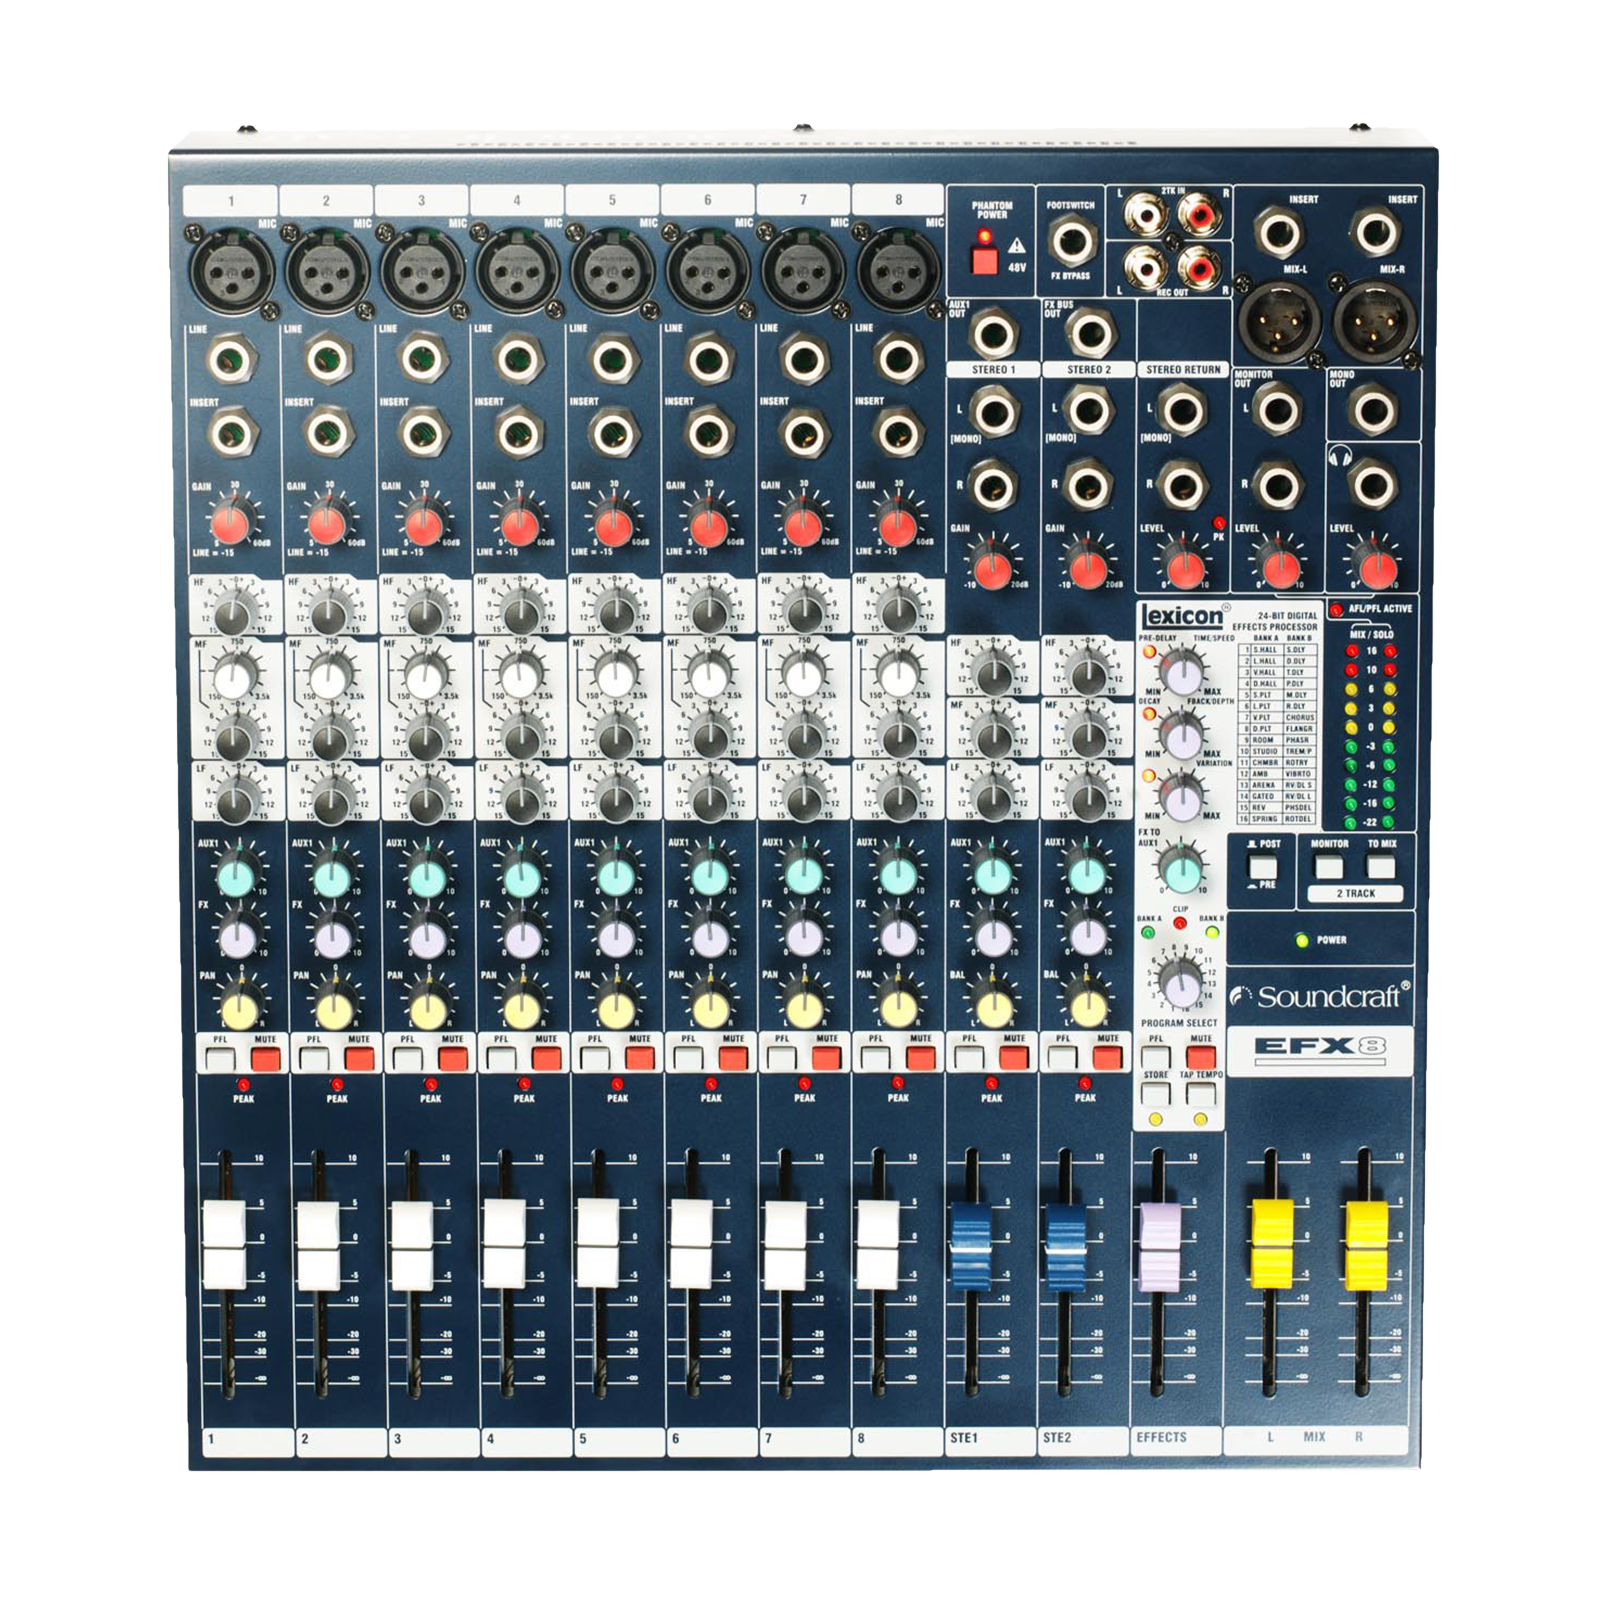 EFX8 - Dark Blue - Compact analogue 8 channel mixer with built-in effects - Detailshot 2